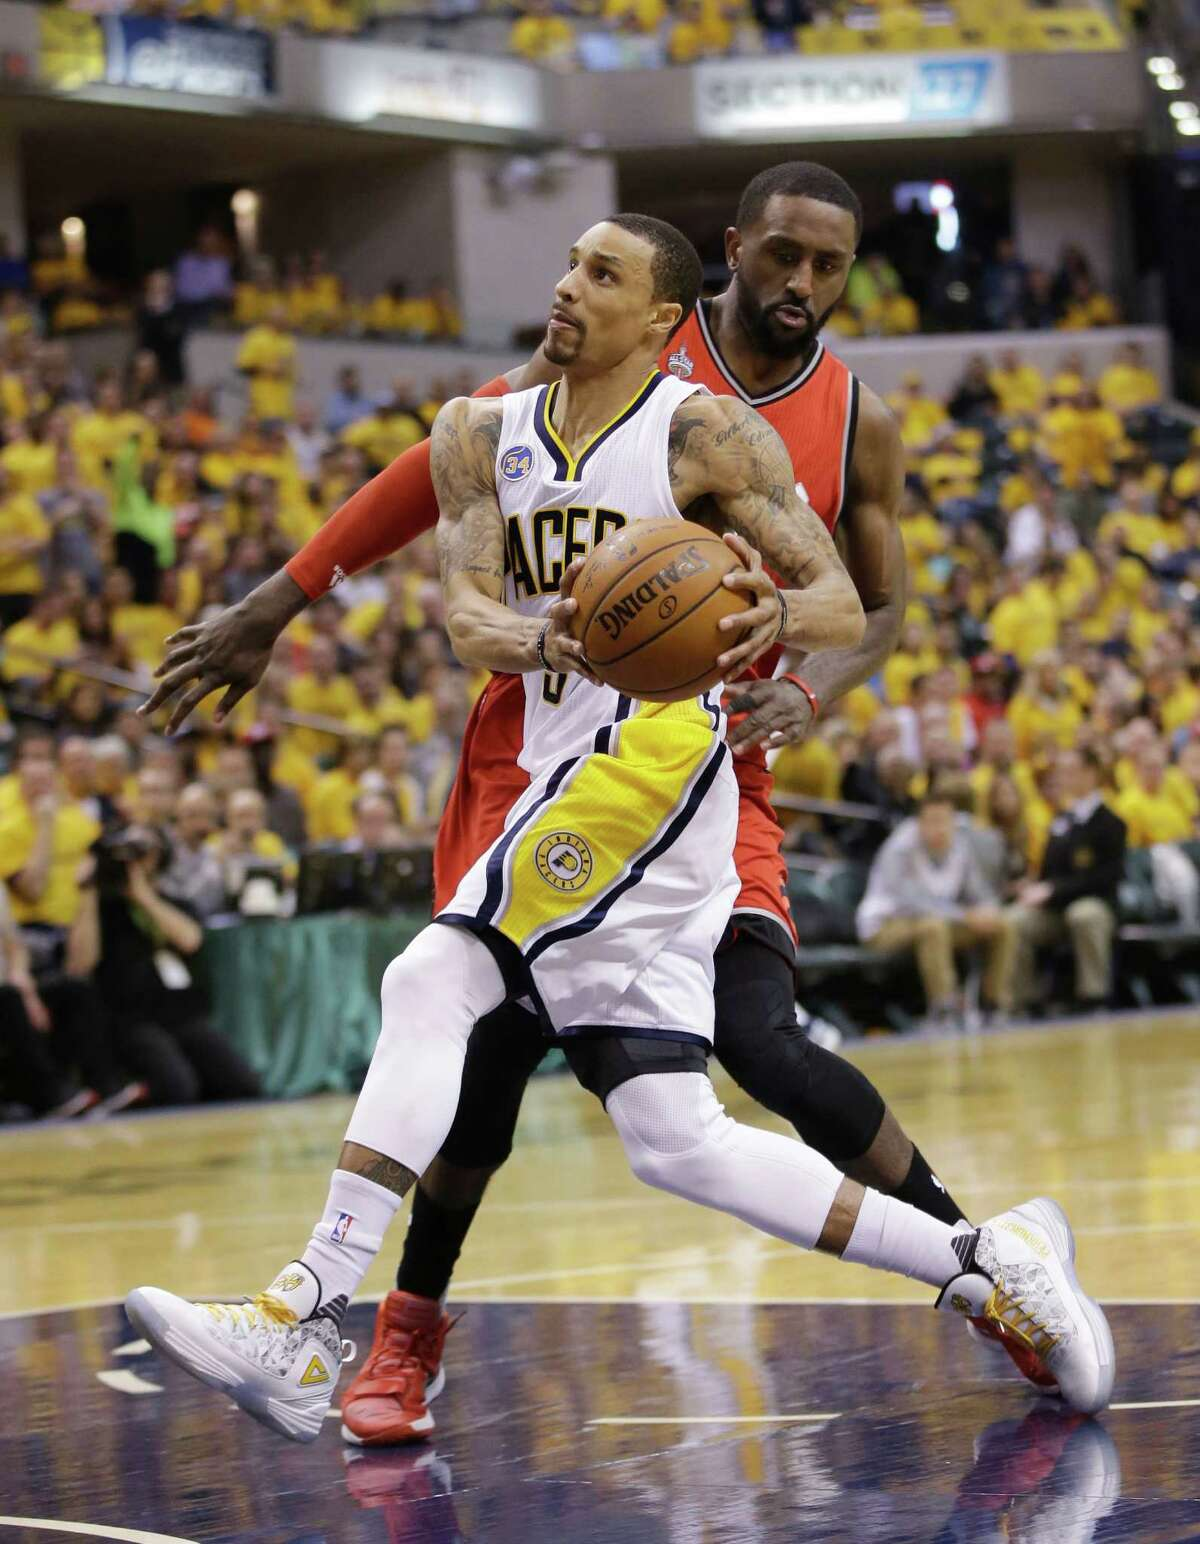 Indiana Pacers' George Hill (3) goes to the basket against Toronto Raptors' Patrick Patterson (54) during the second half of Game 6 of an NBA first-round playoff basketball series Friday, April 29, 2016, in Indianapolis. Indiana won 101-83. (AP Photo/Darron Cummings)